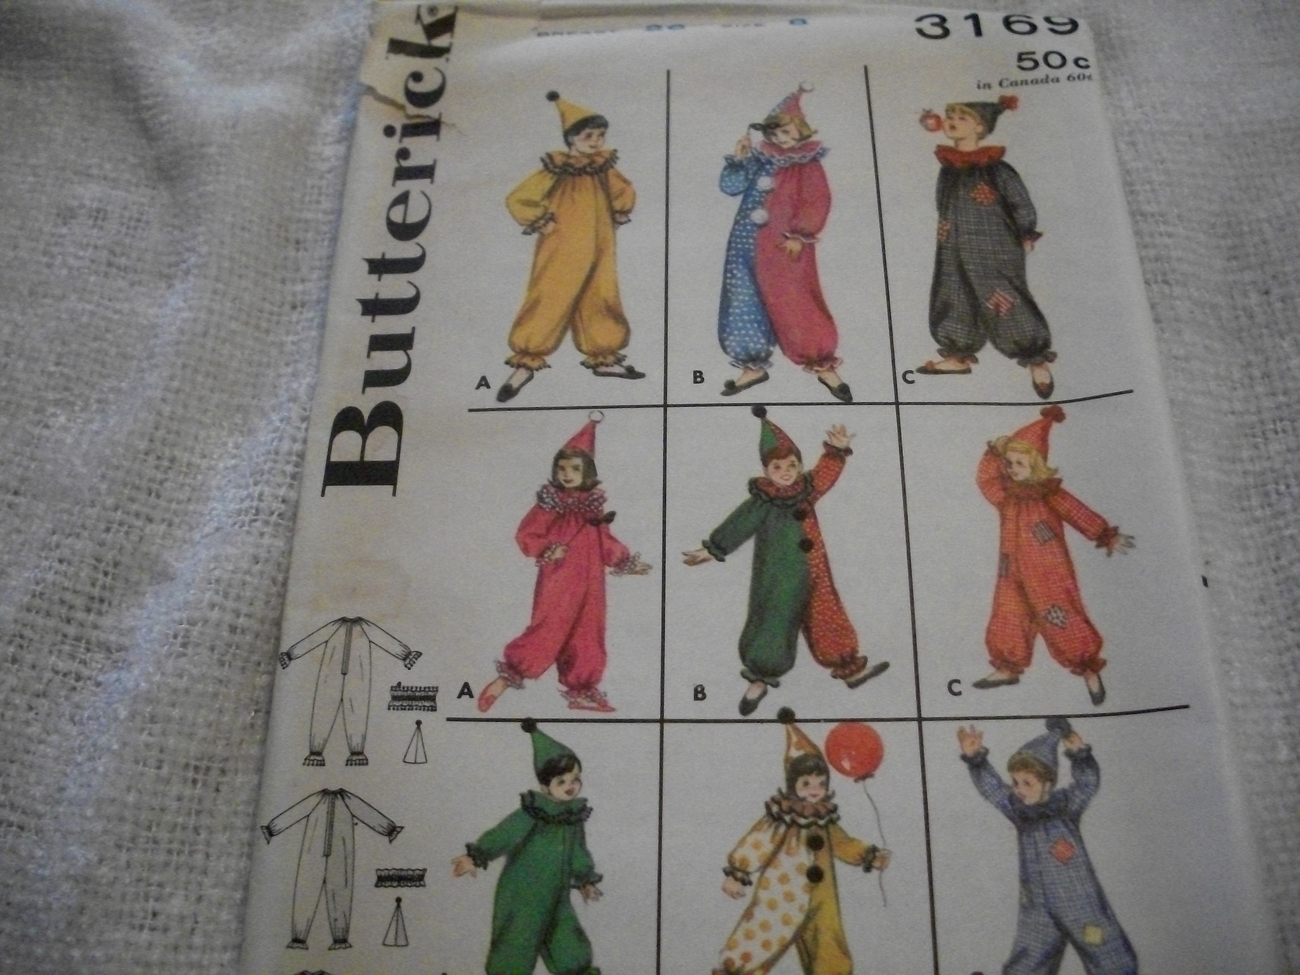 Boy's & Girl's Clown Costume Pattern Butterick 3169